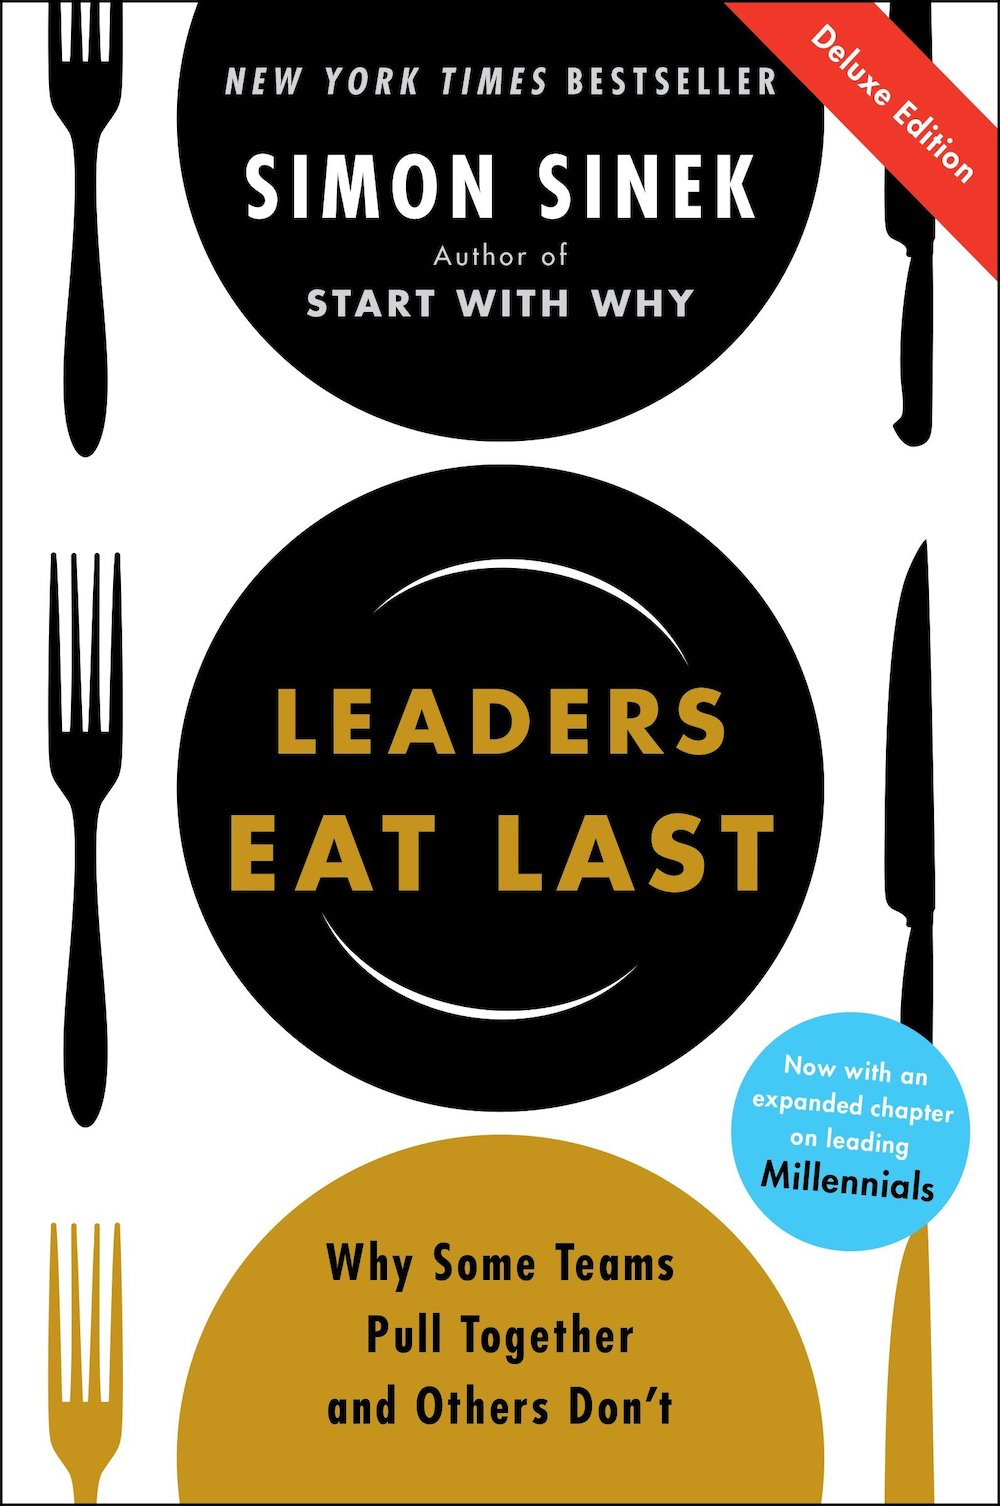 The cover of Leaders Eat Last